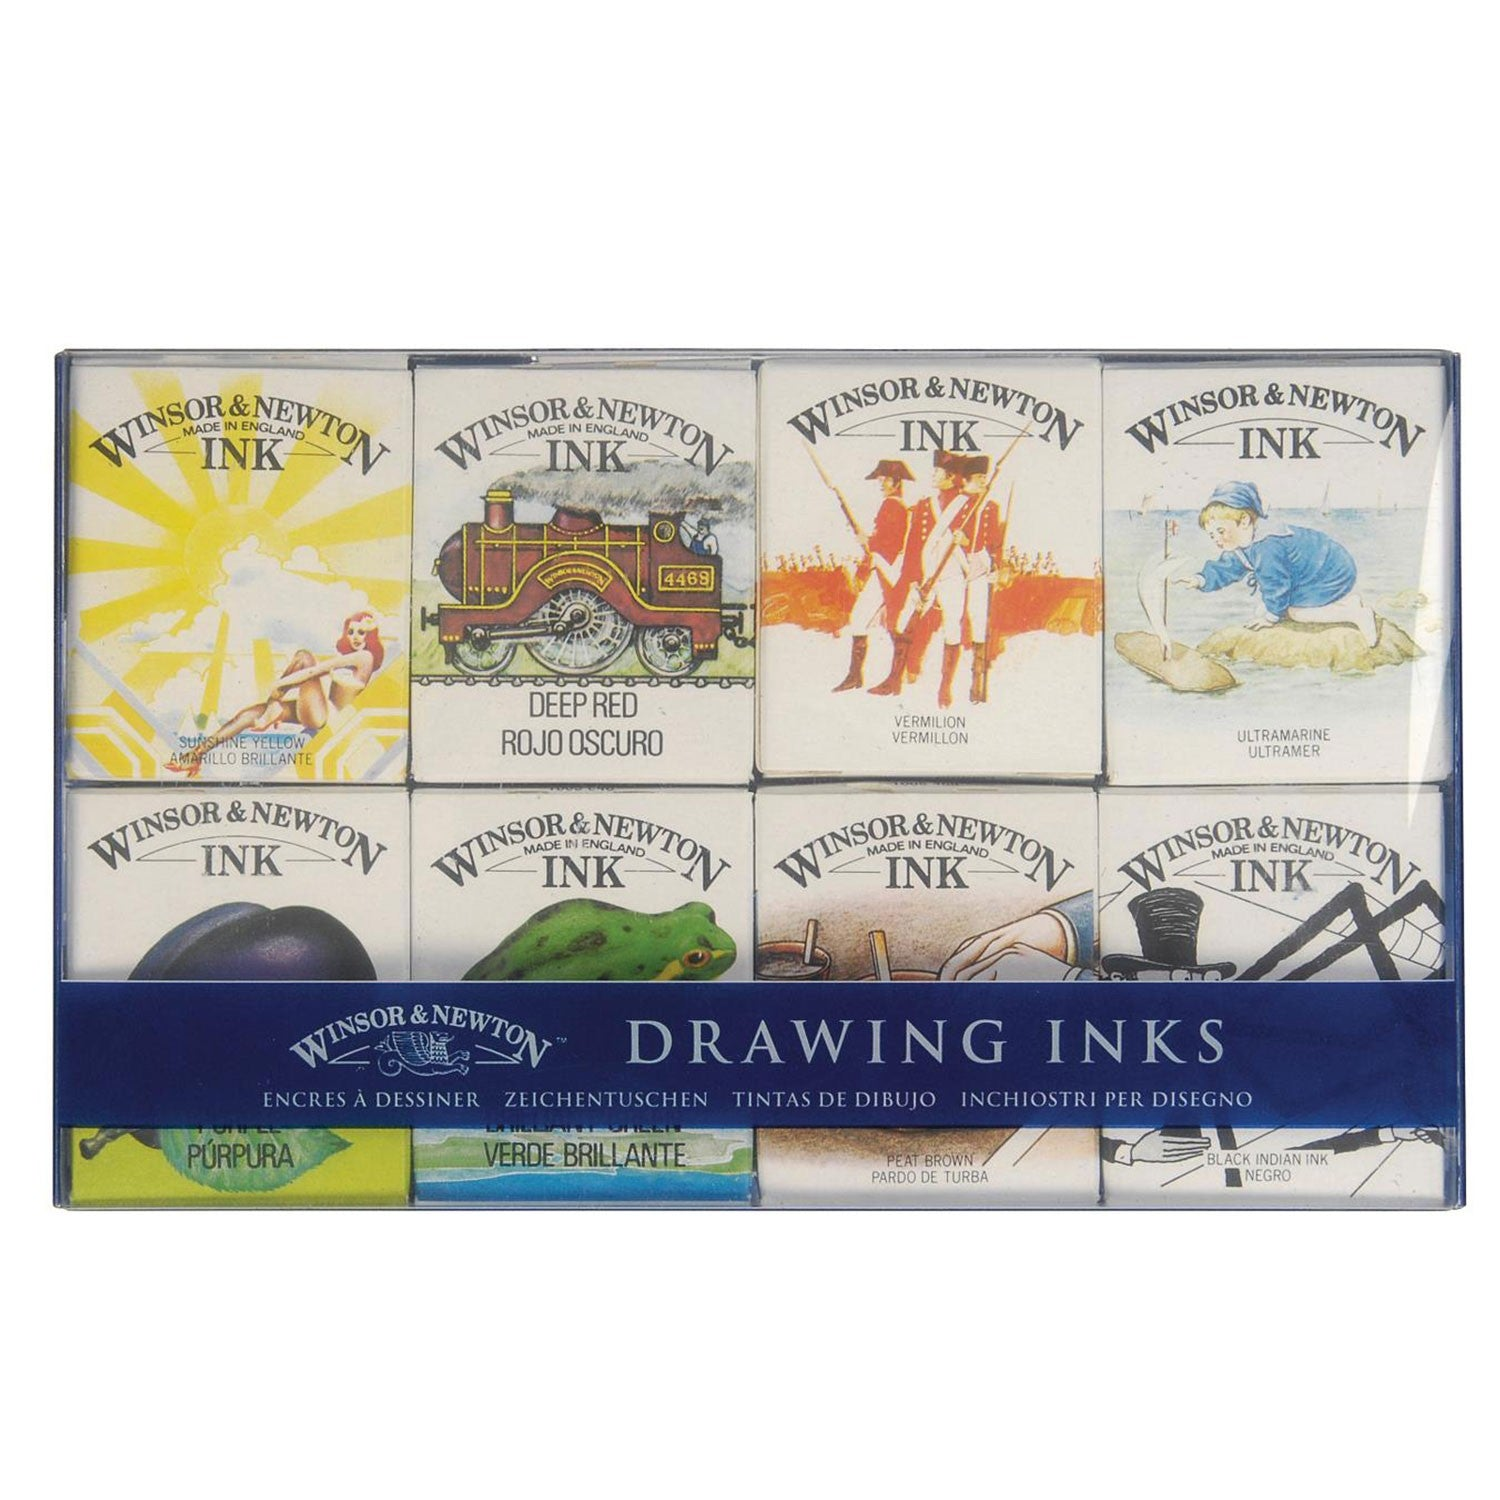 Winsor & Newton Drawing Inks - The William Set